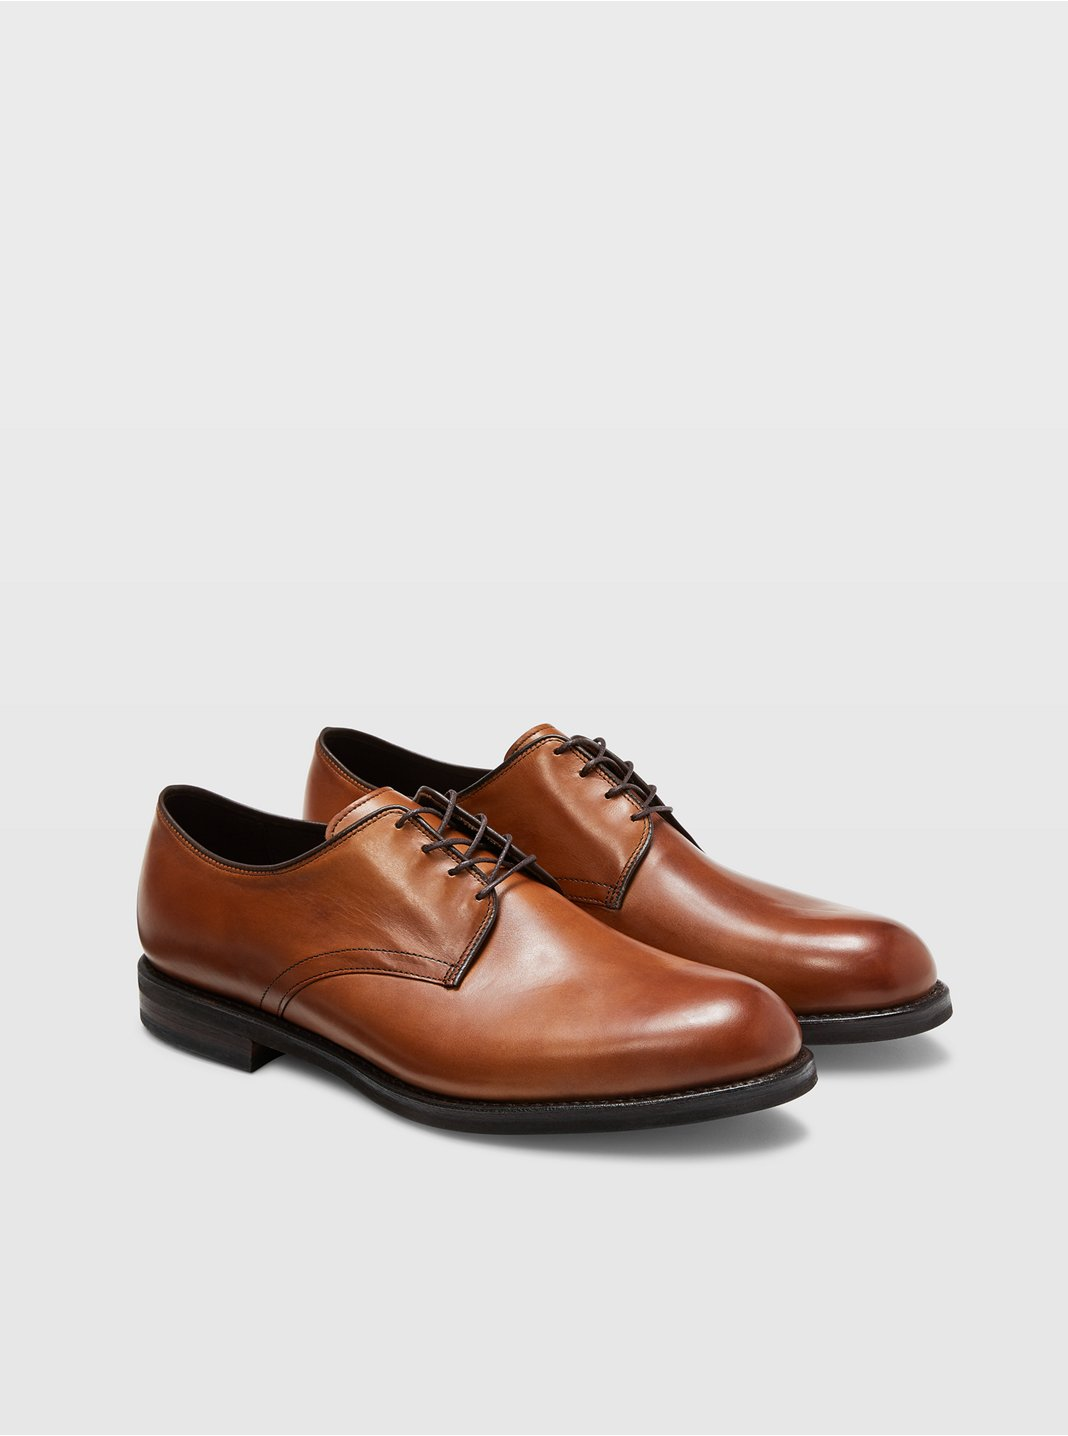 Allen Edmonds Nomad